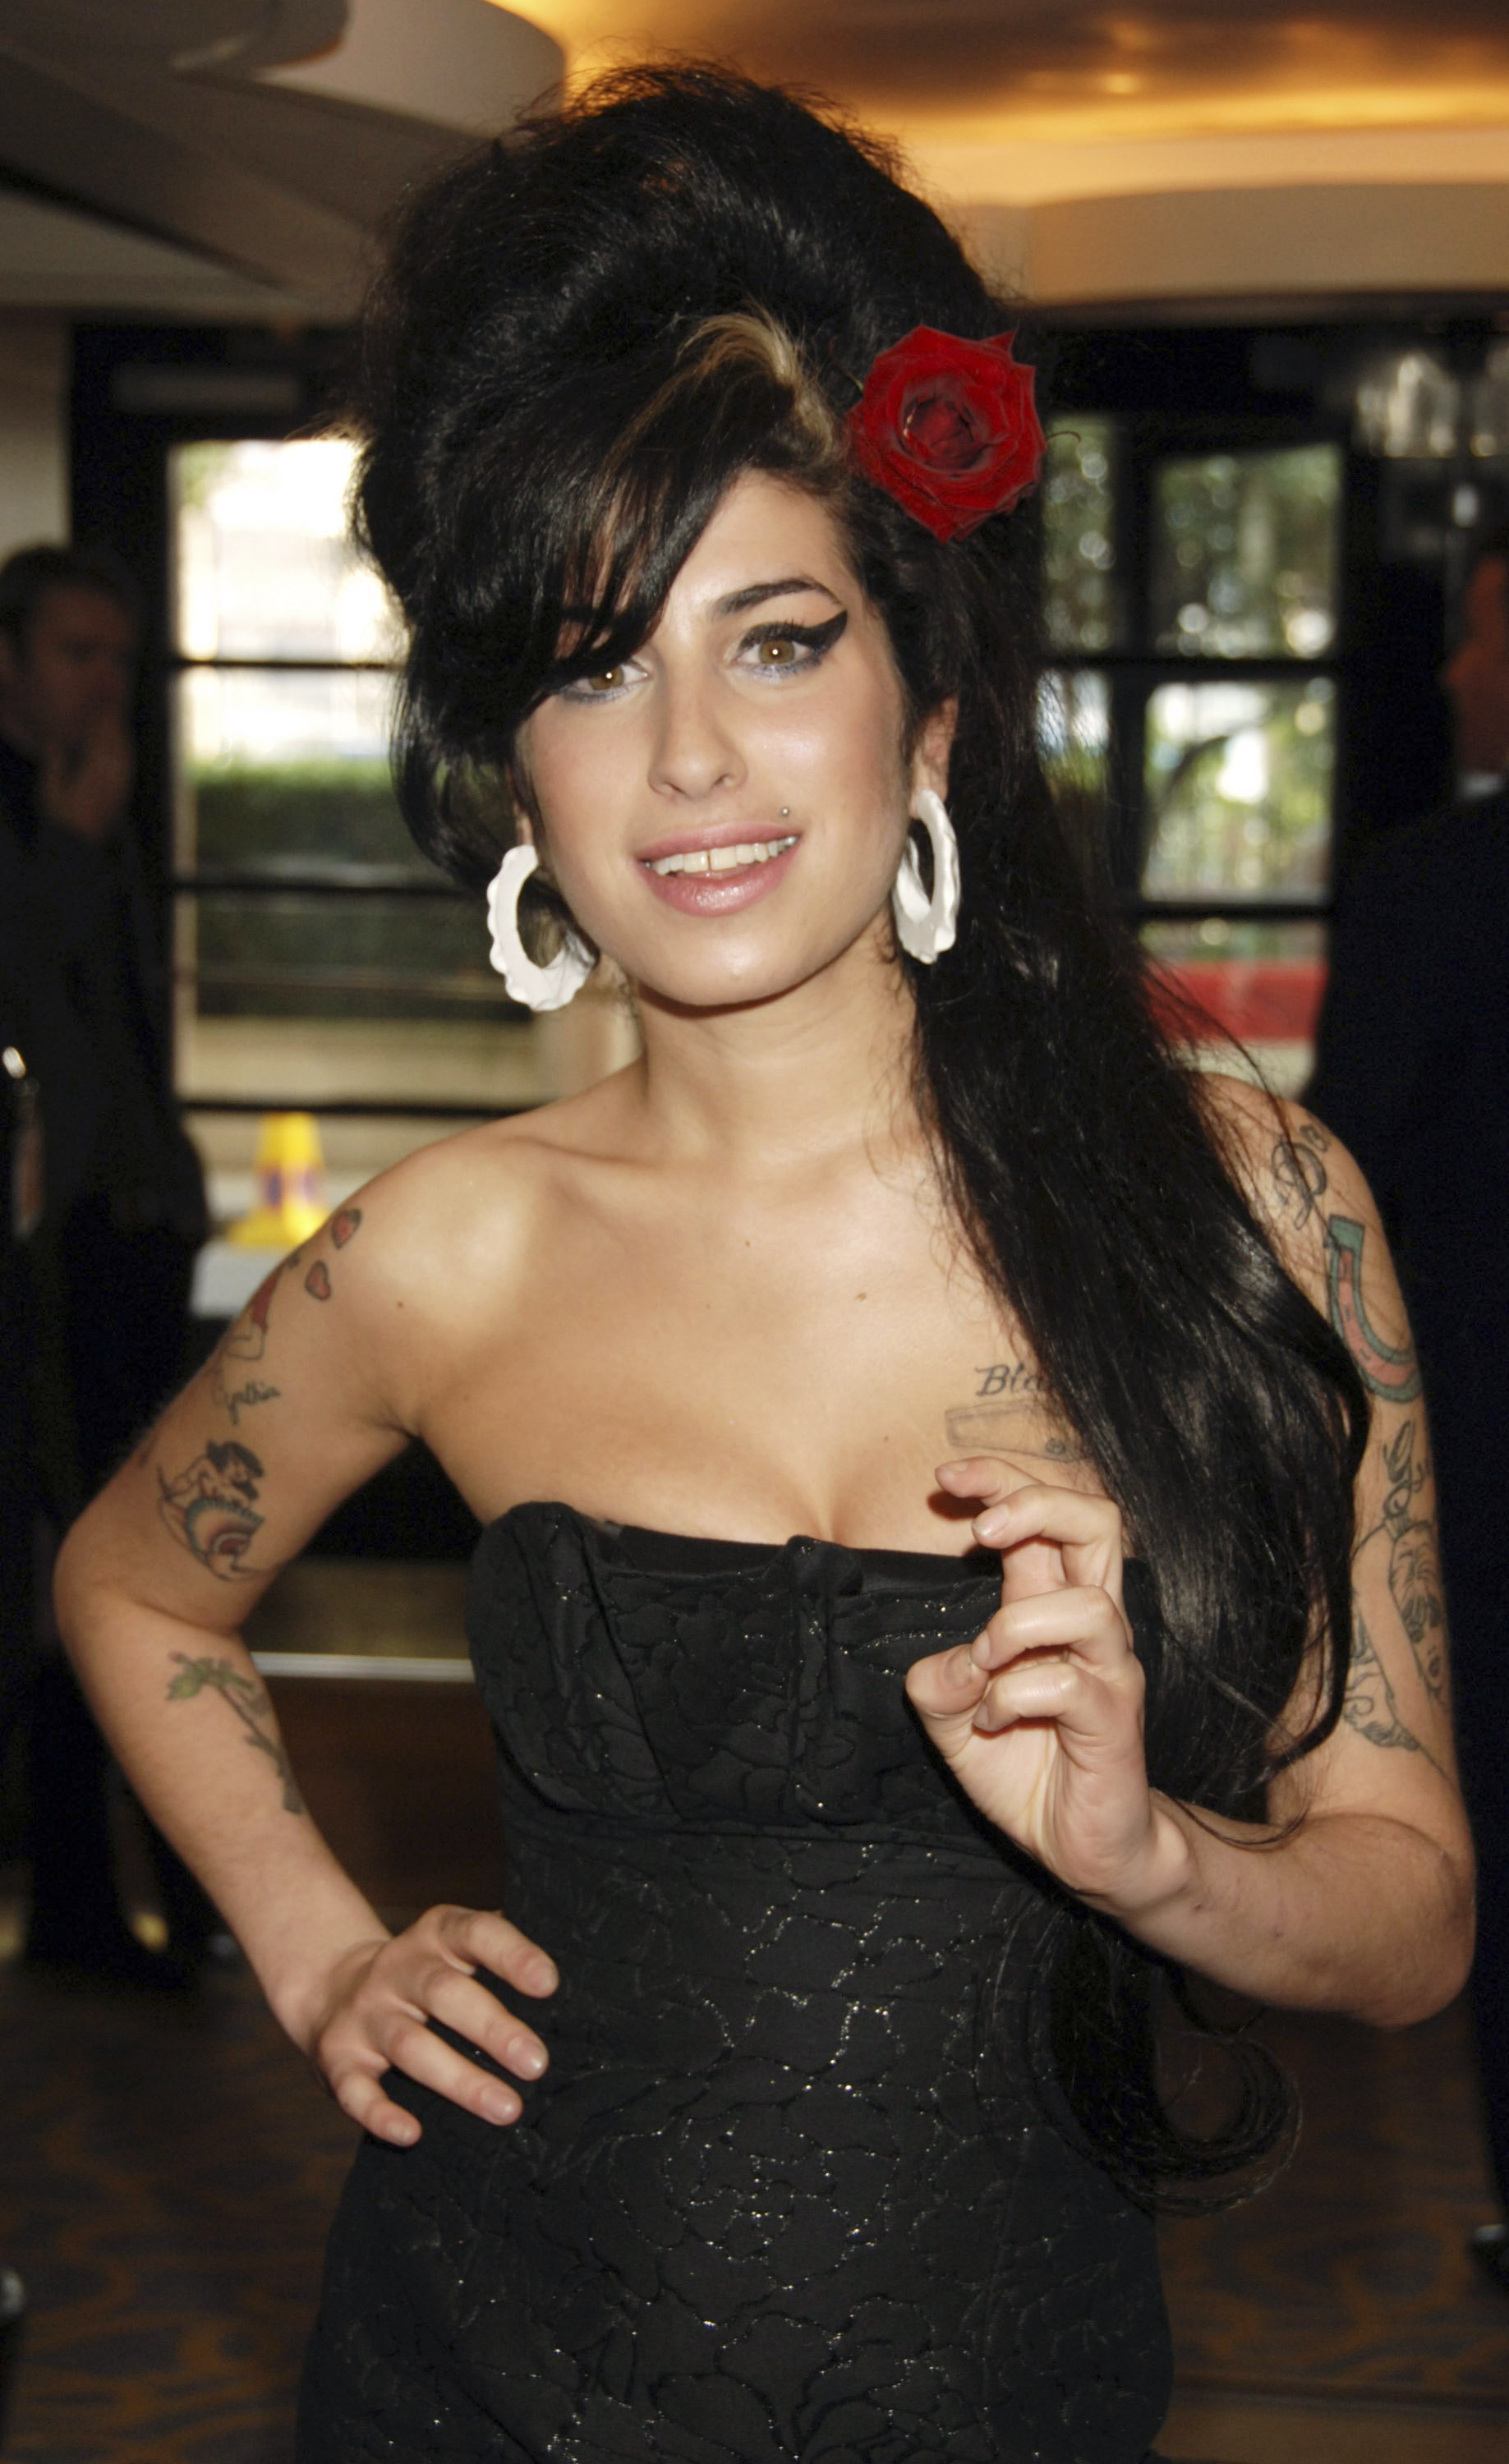 Amy Winehouse arrives at the South Bank Show Awards, at The Savoy Hotel in London on Jan. 23, 2007.